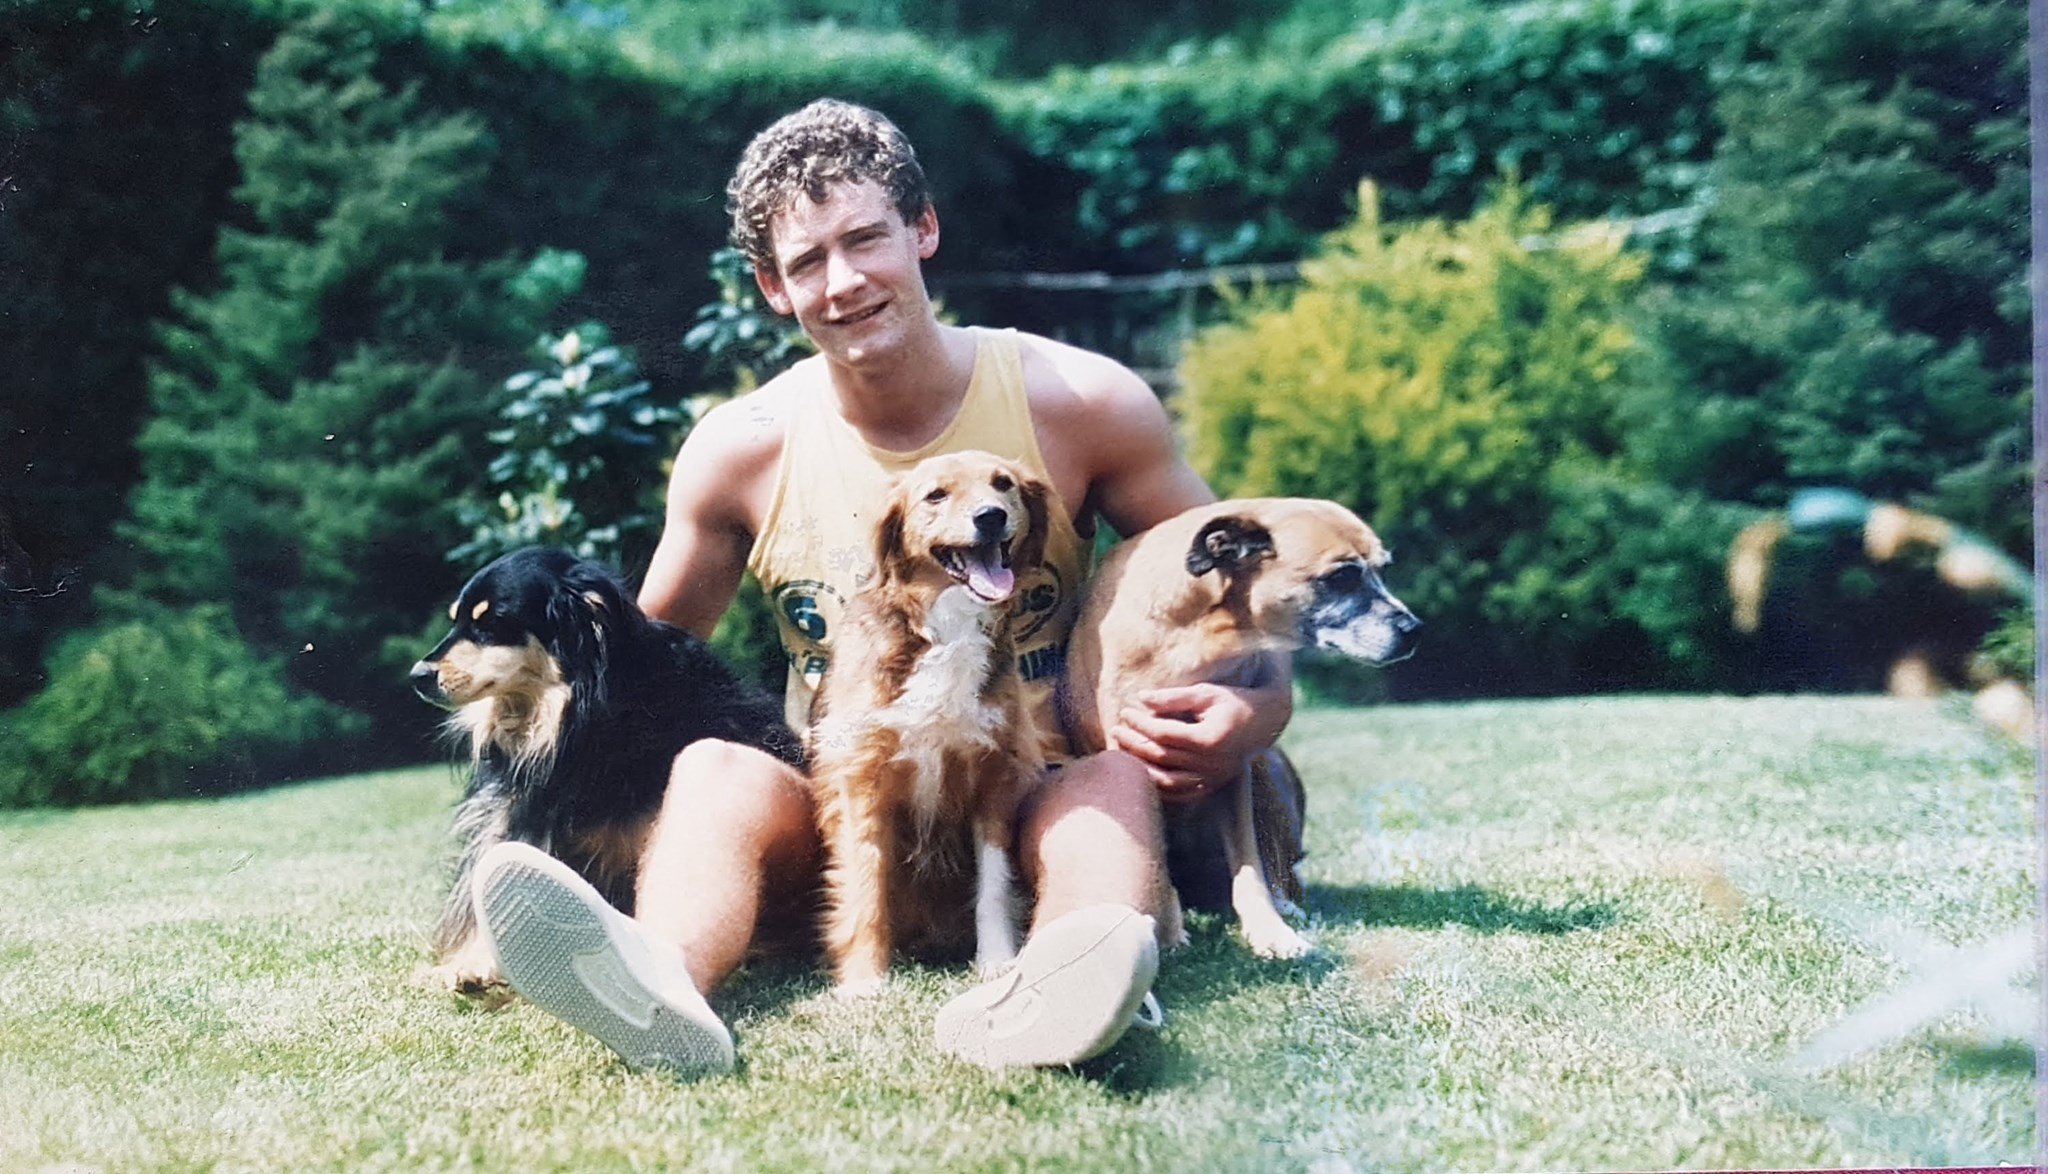 With his doggy family